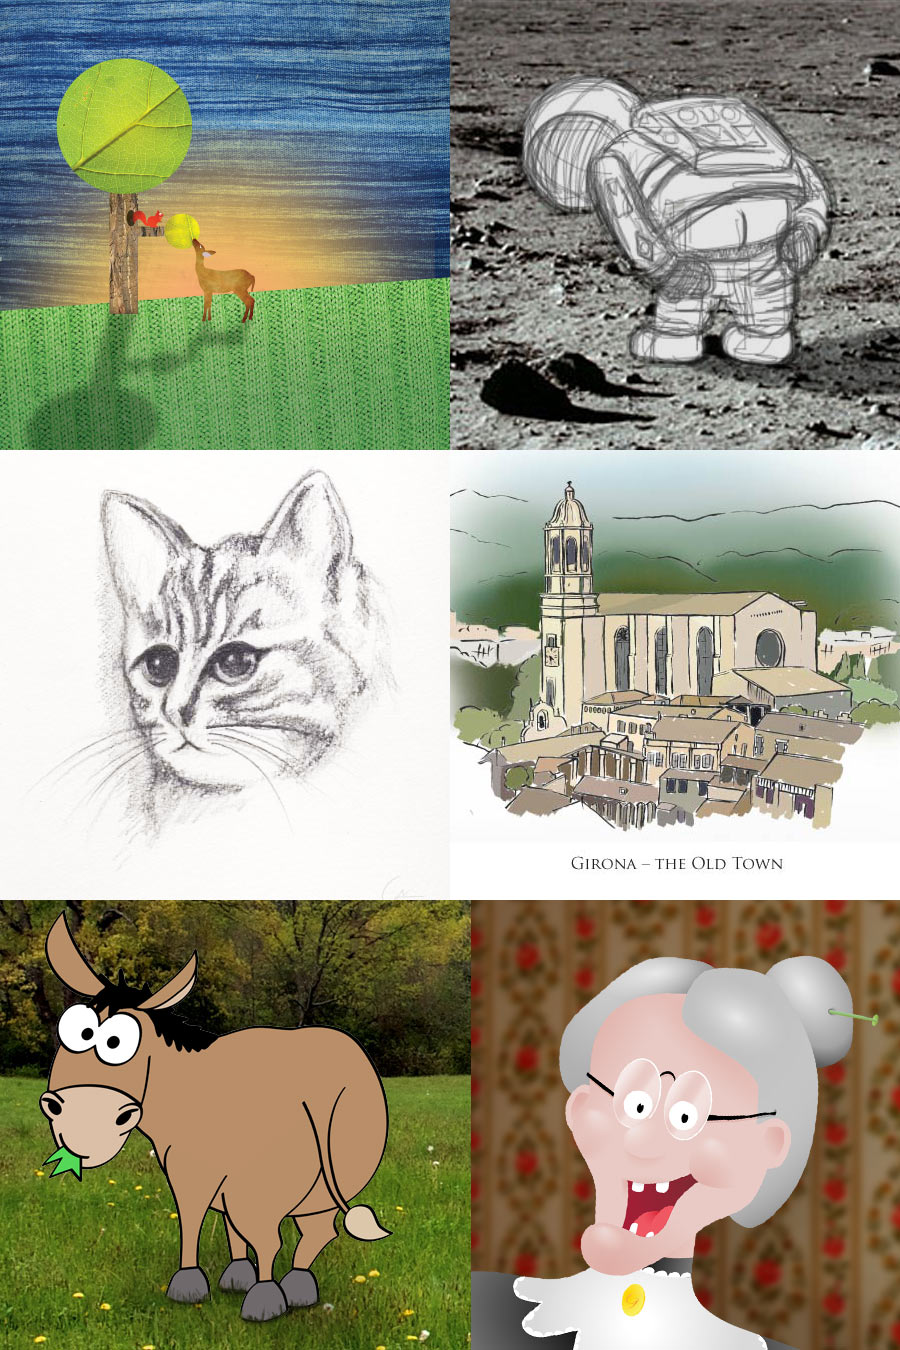 Illustrations including a deer, an astronaut, a cat, Girona, a Donkey, and an old lady